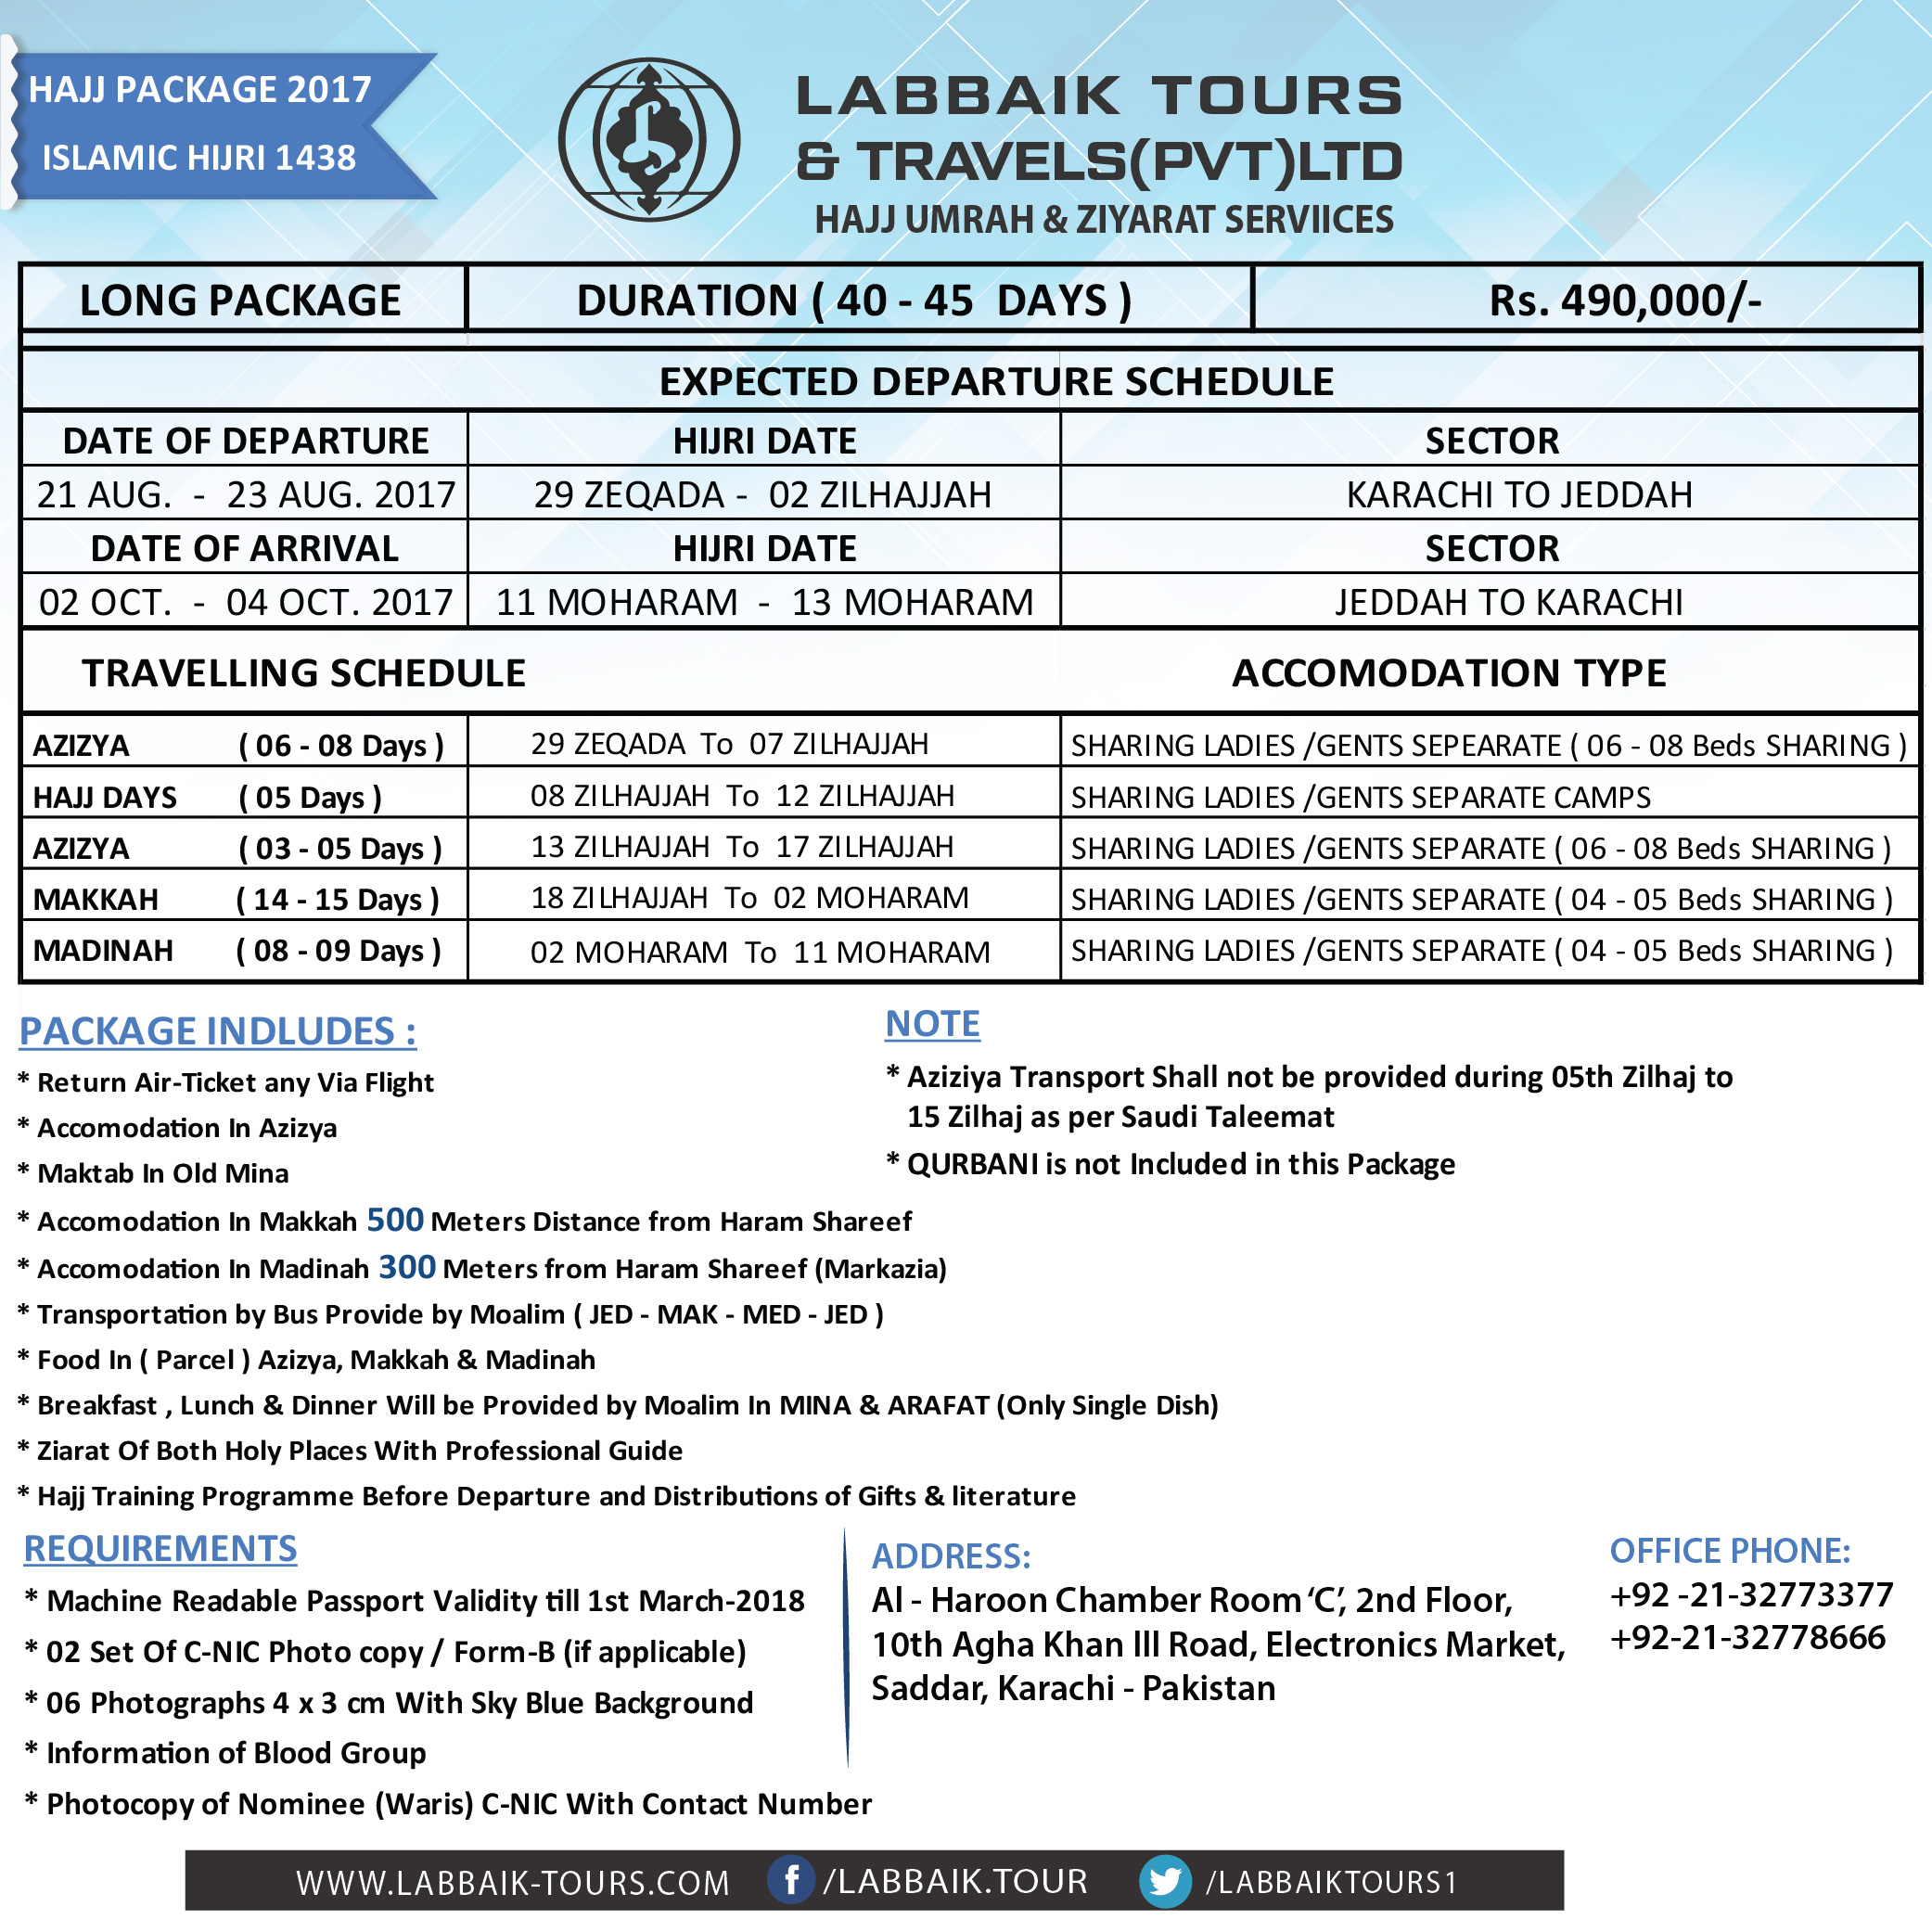 Hajj 2017 Package | Labbaik Tours & Travels (Pvt ) Ltd